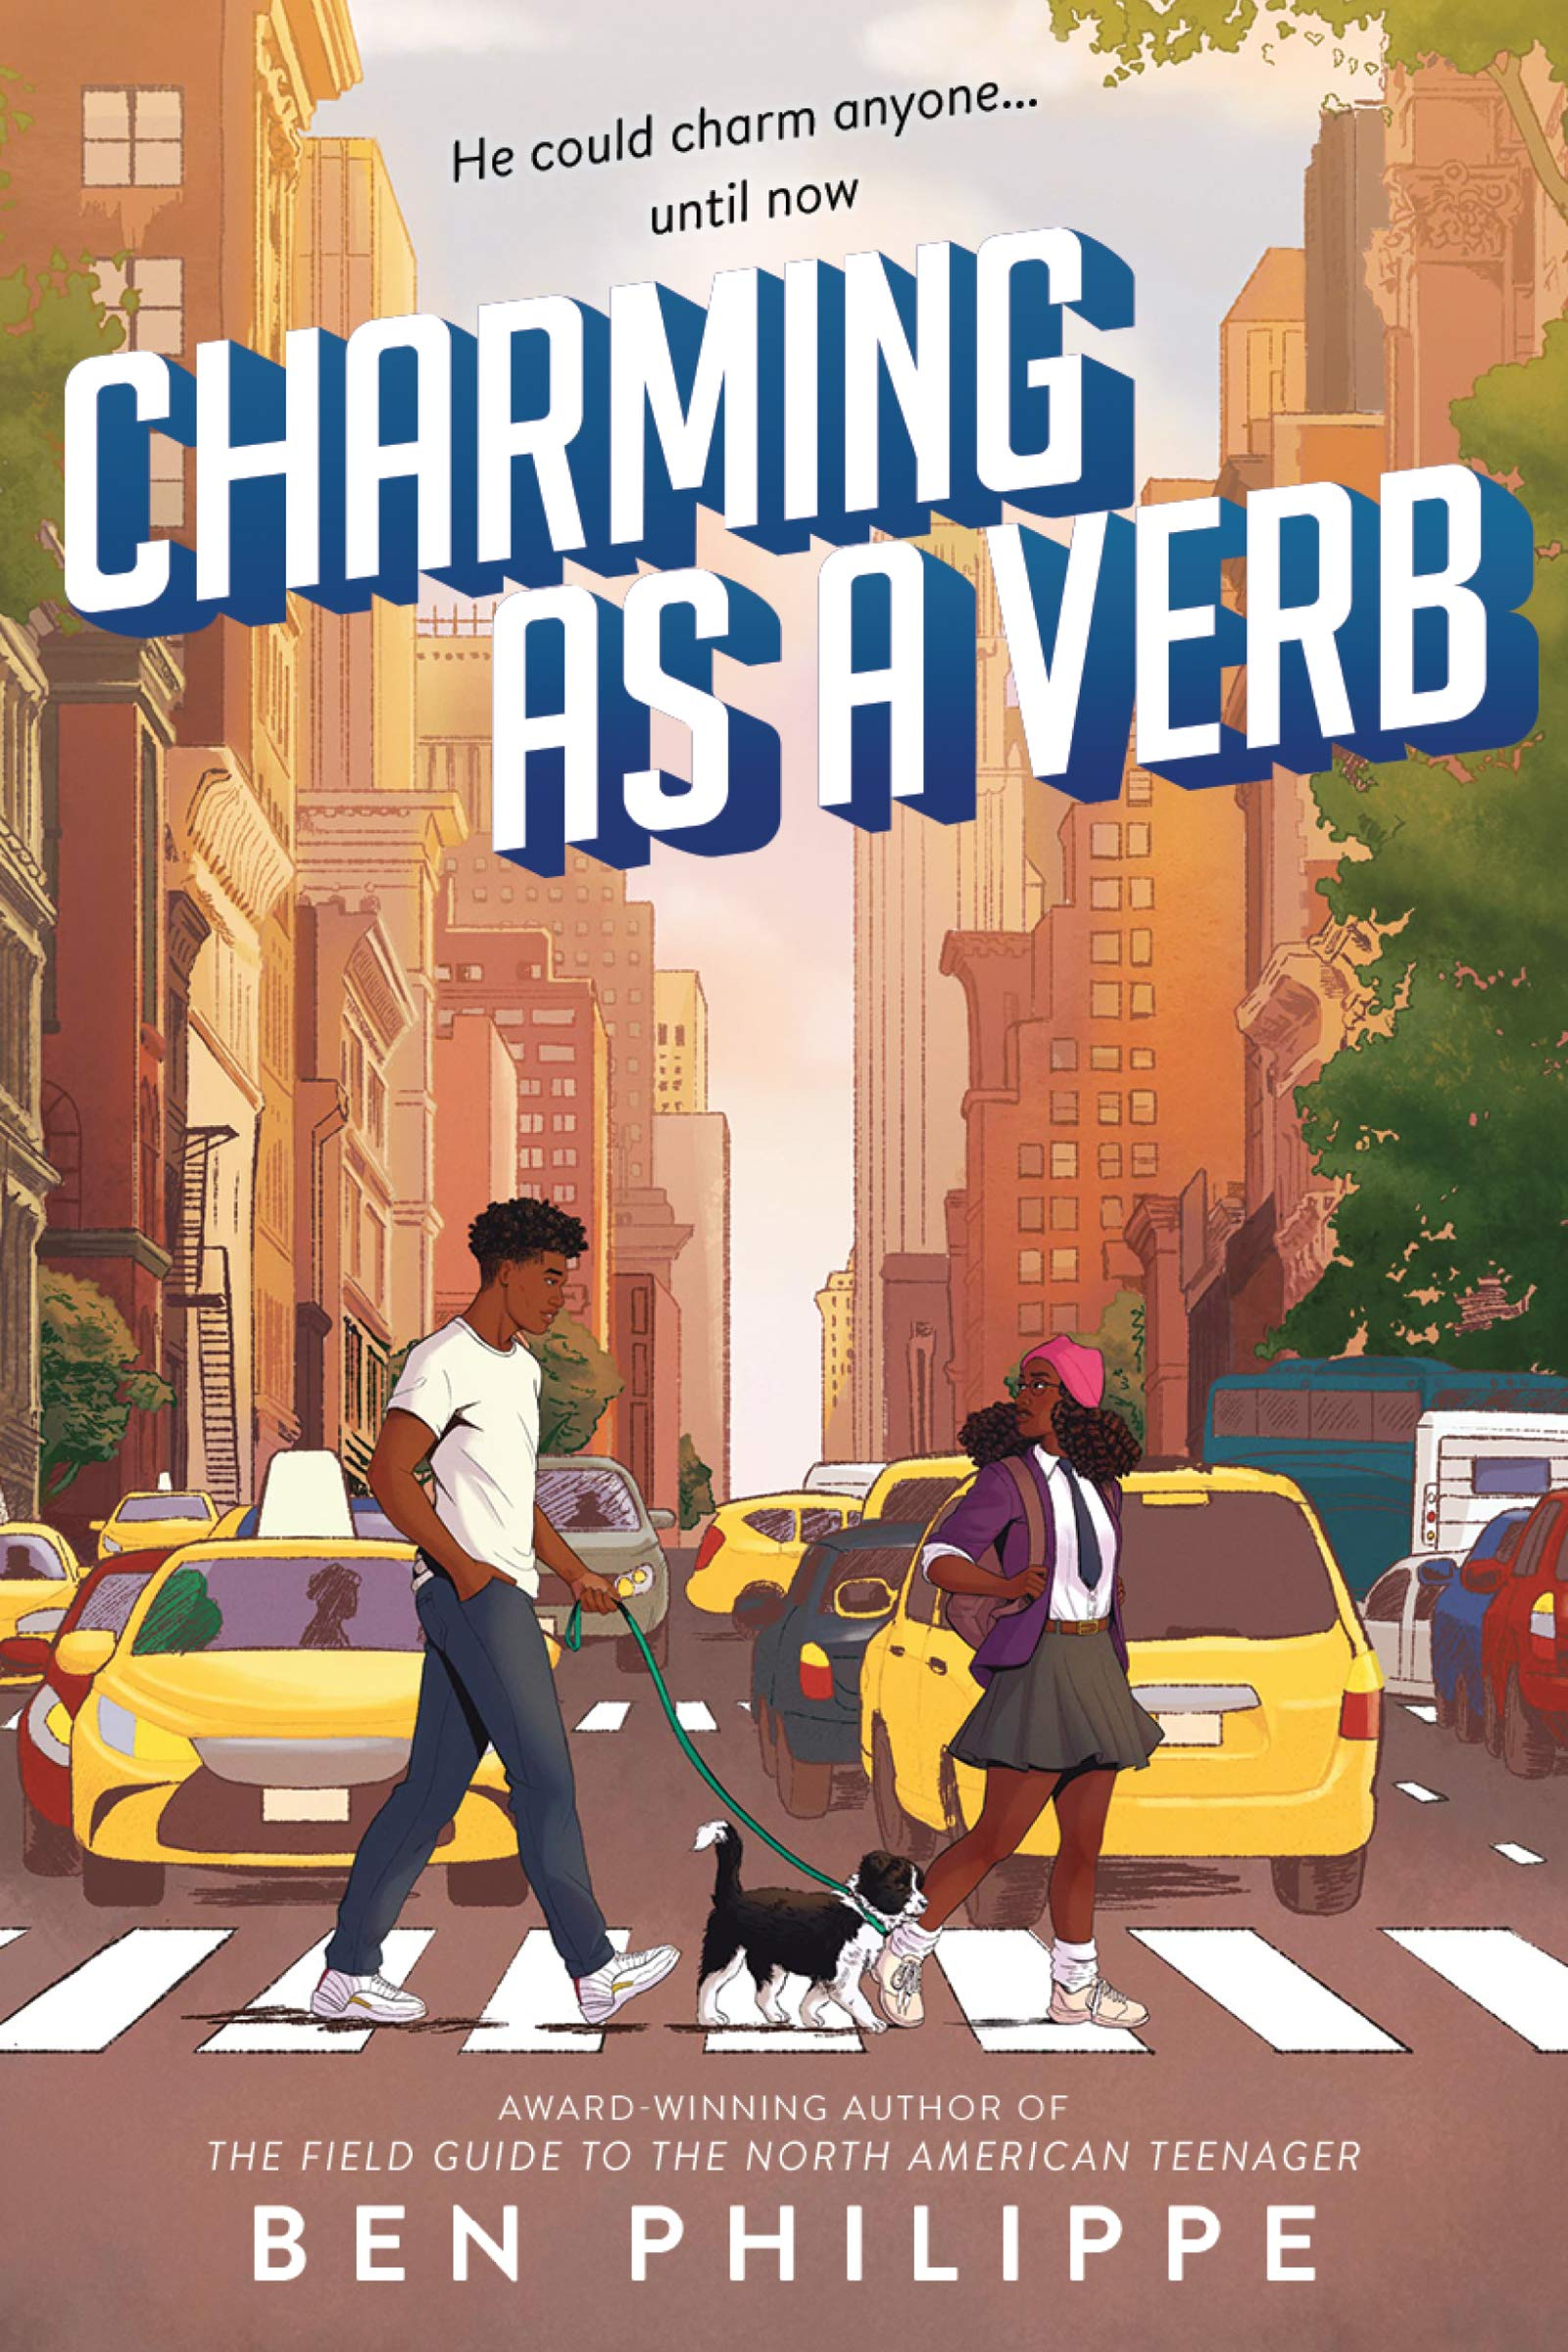 Charming as a Verb Book Cover